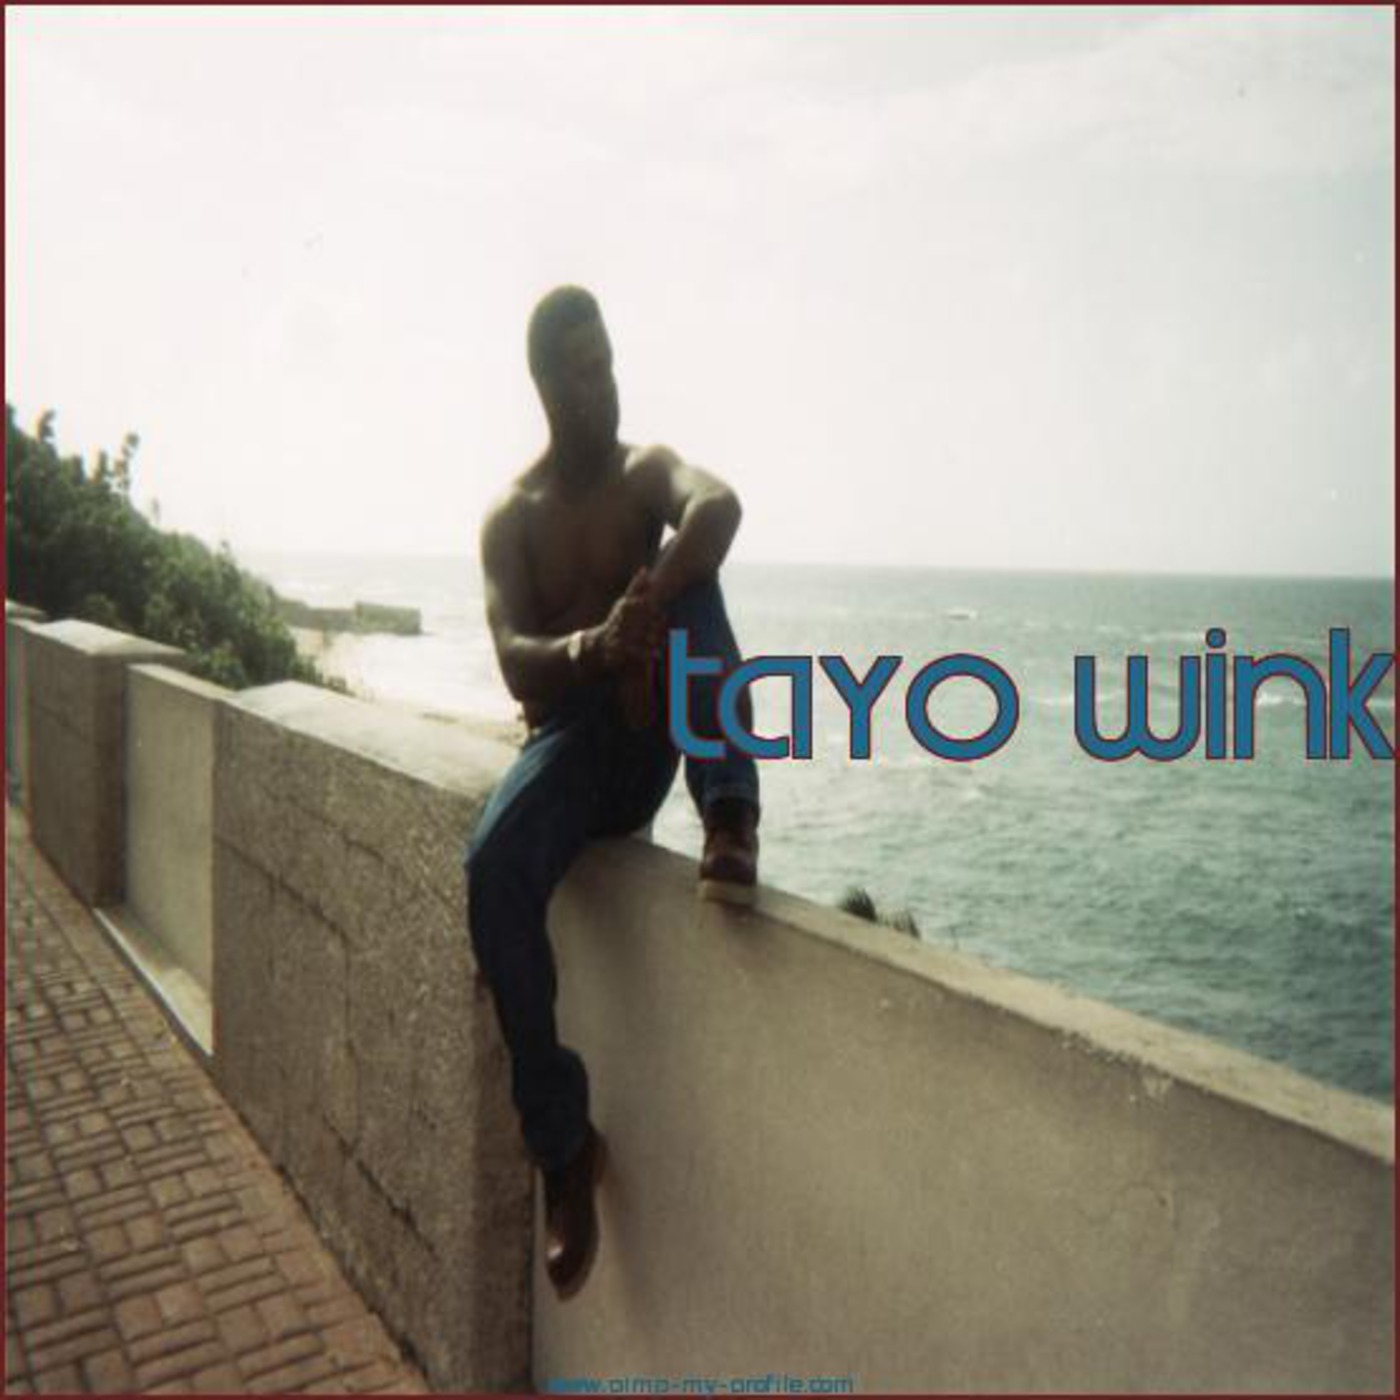 Tayo  Wink's Journey Through House